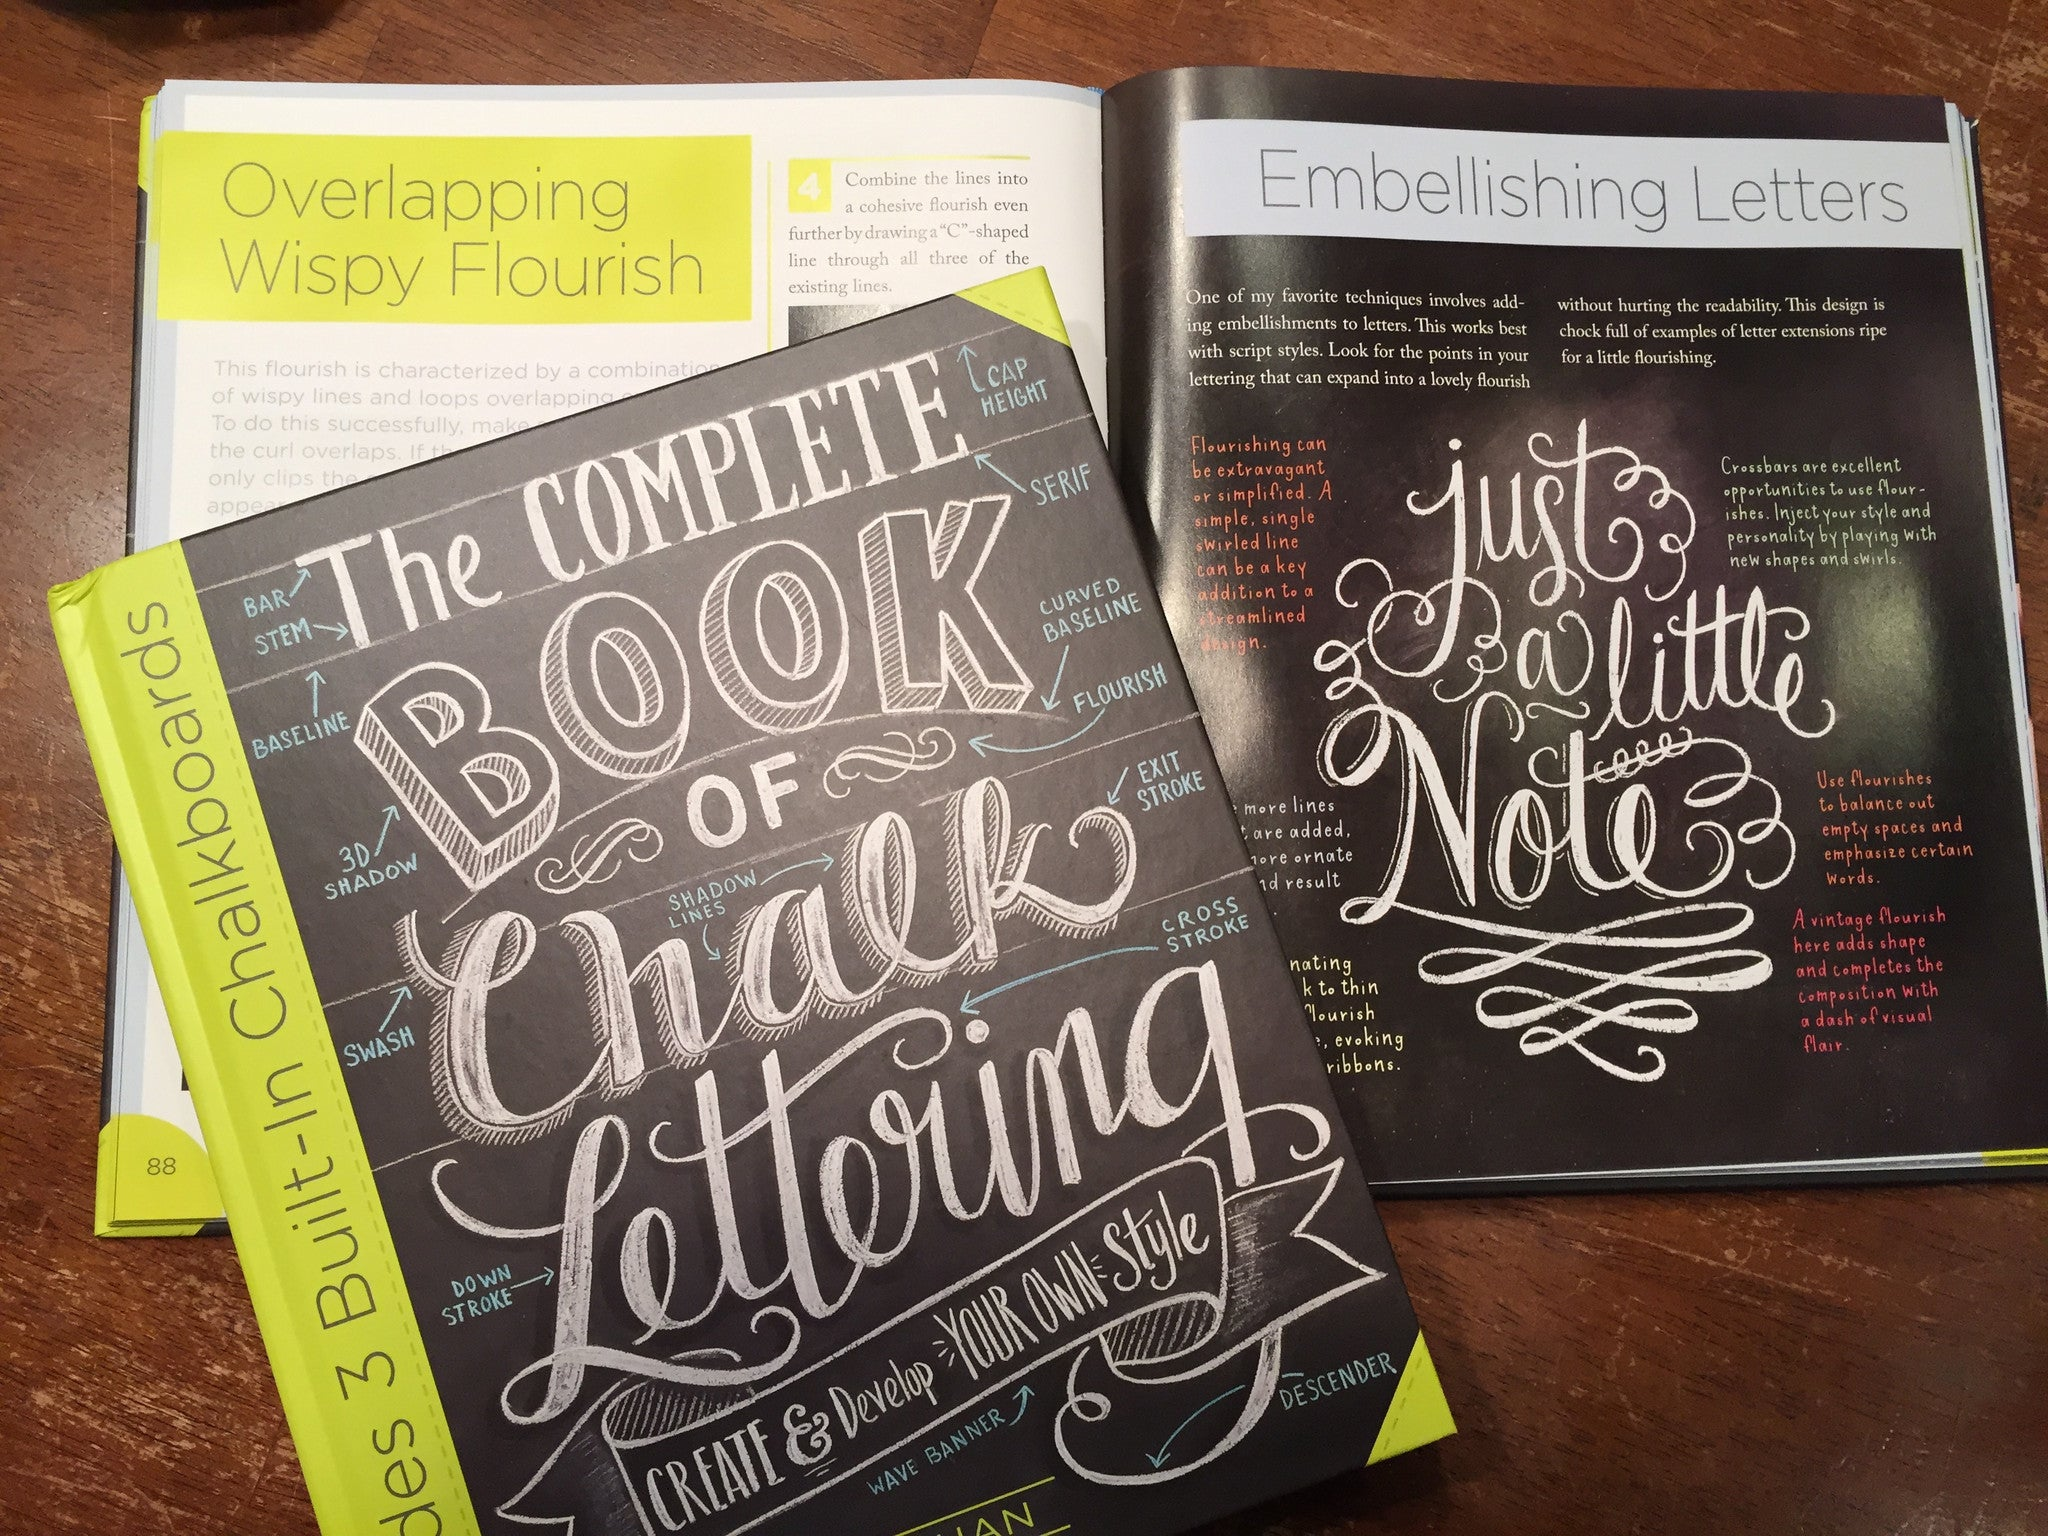 Book - Complete Book of Chalk Lettering: Create and